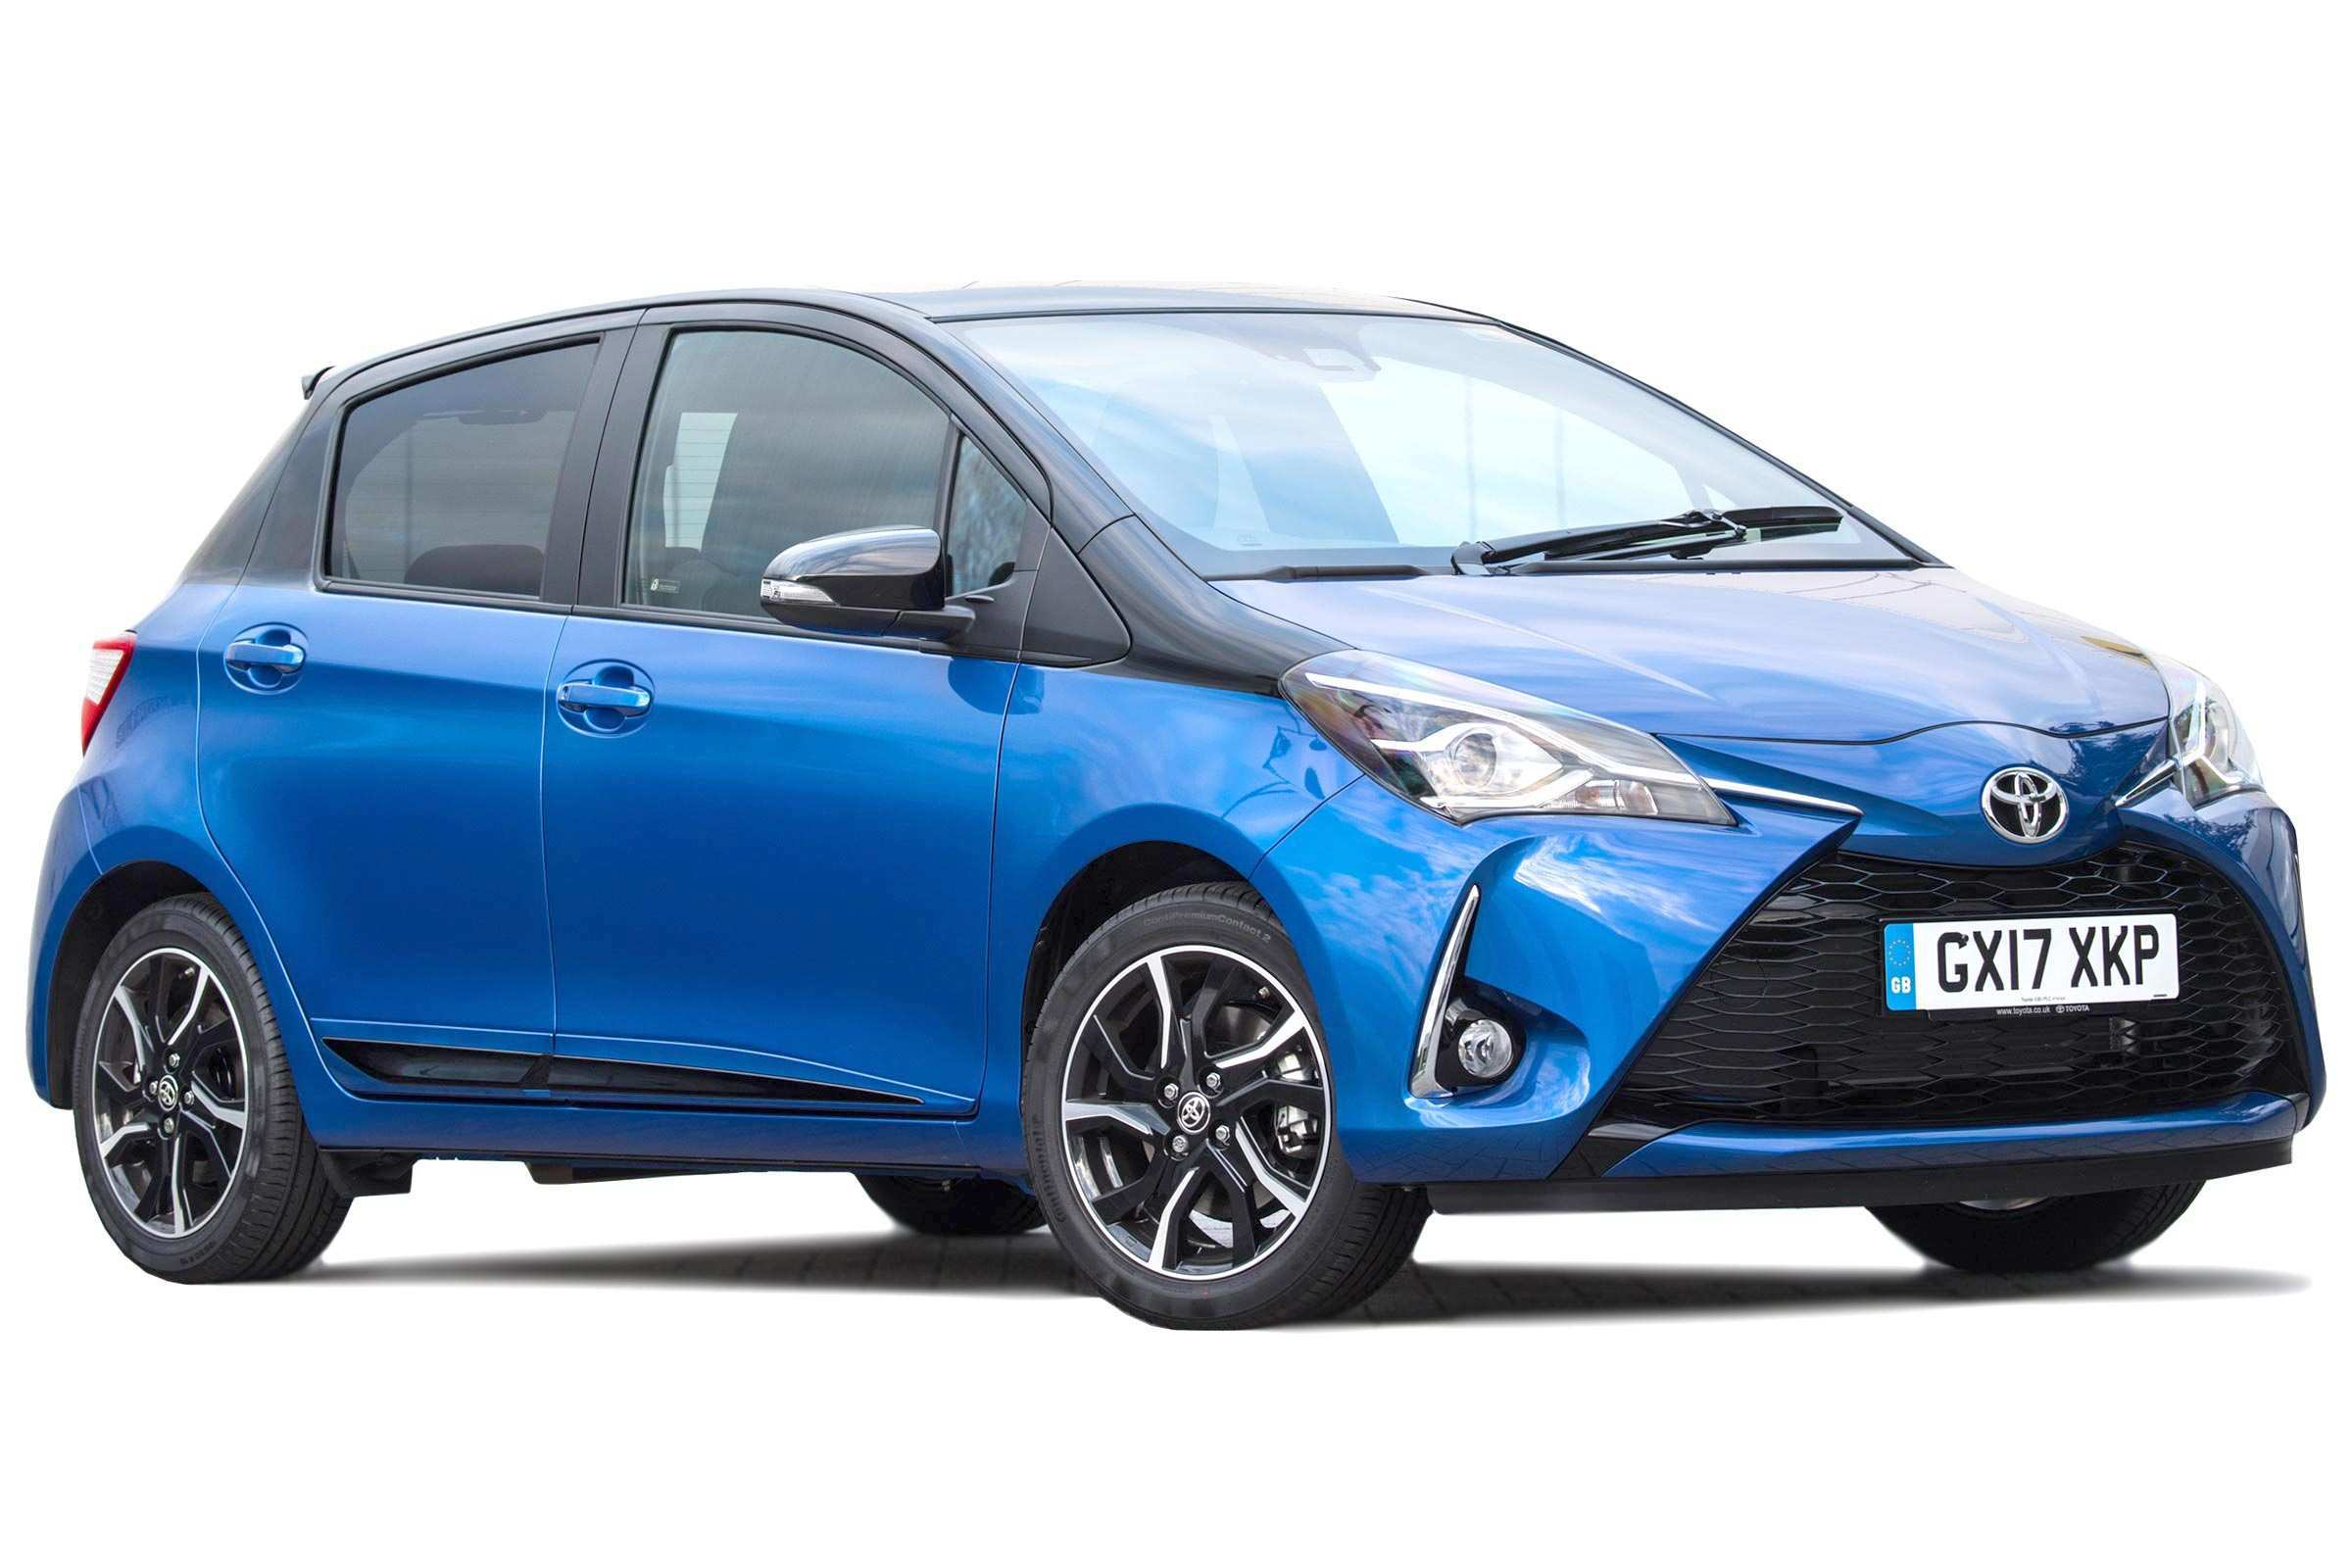 80 The Best Yaris Toyota 2019 Precio Price And Review History with Best Yaris Toyota 2019 Precio Price And Review